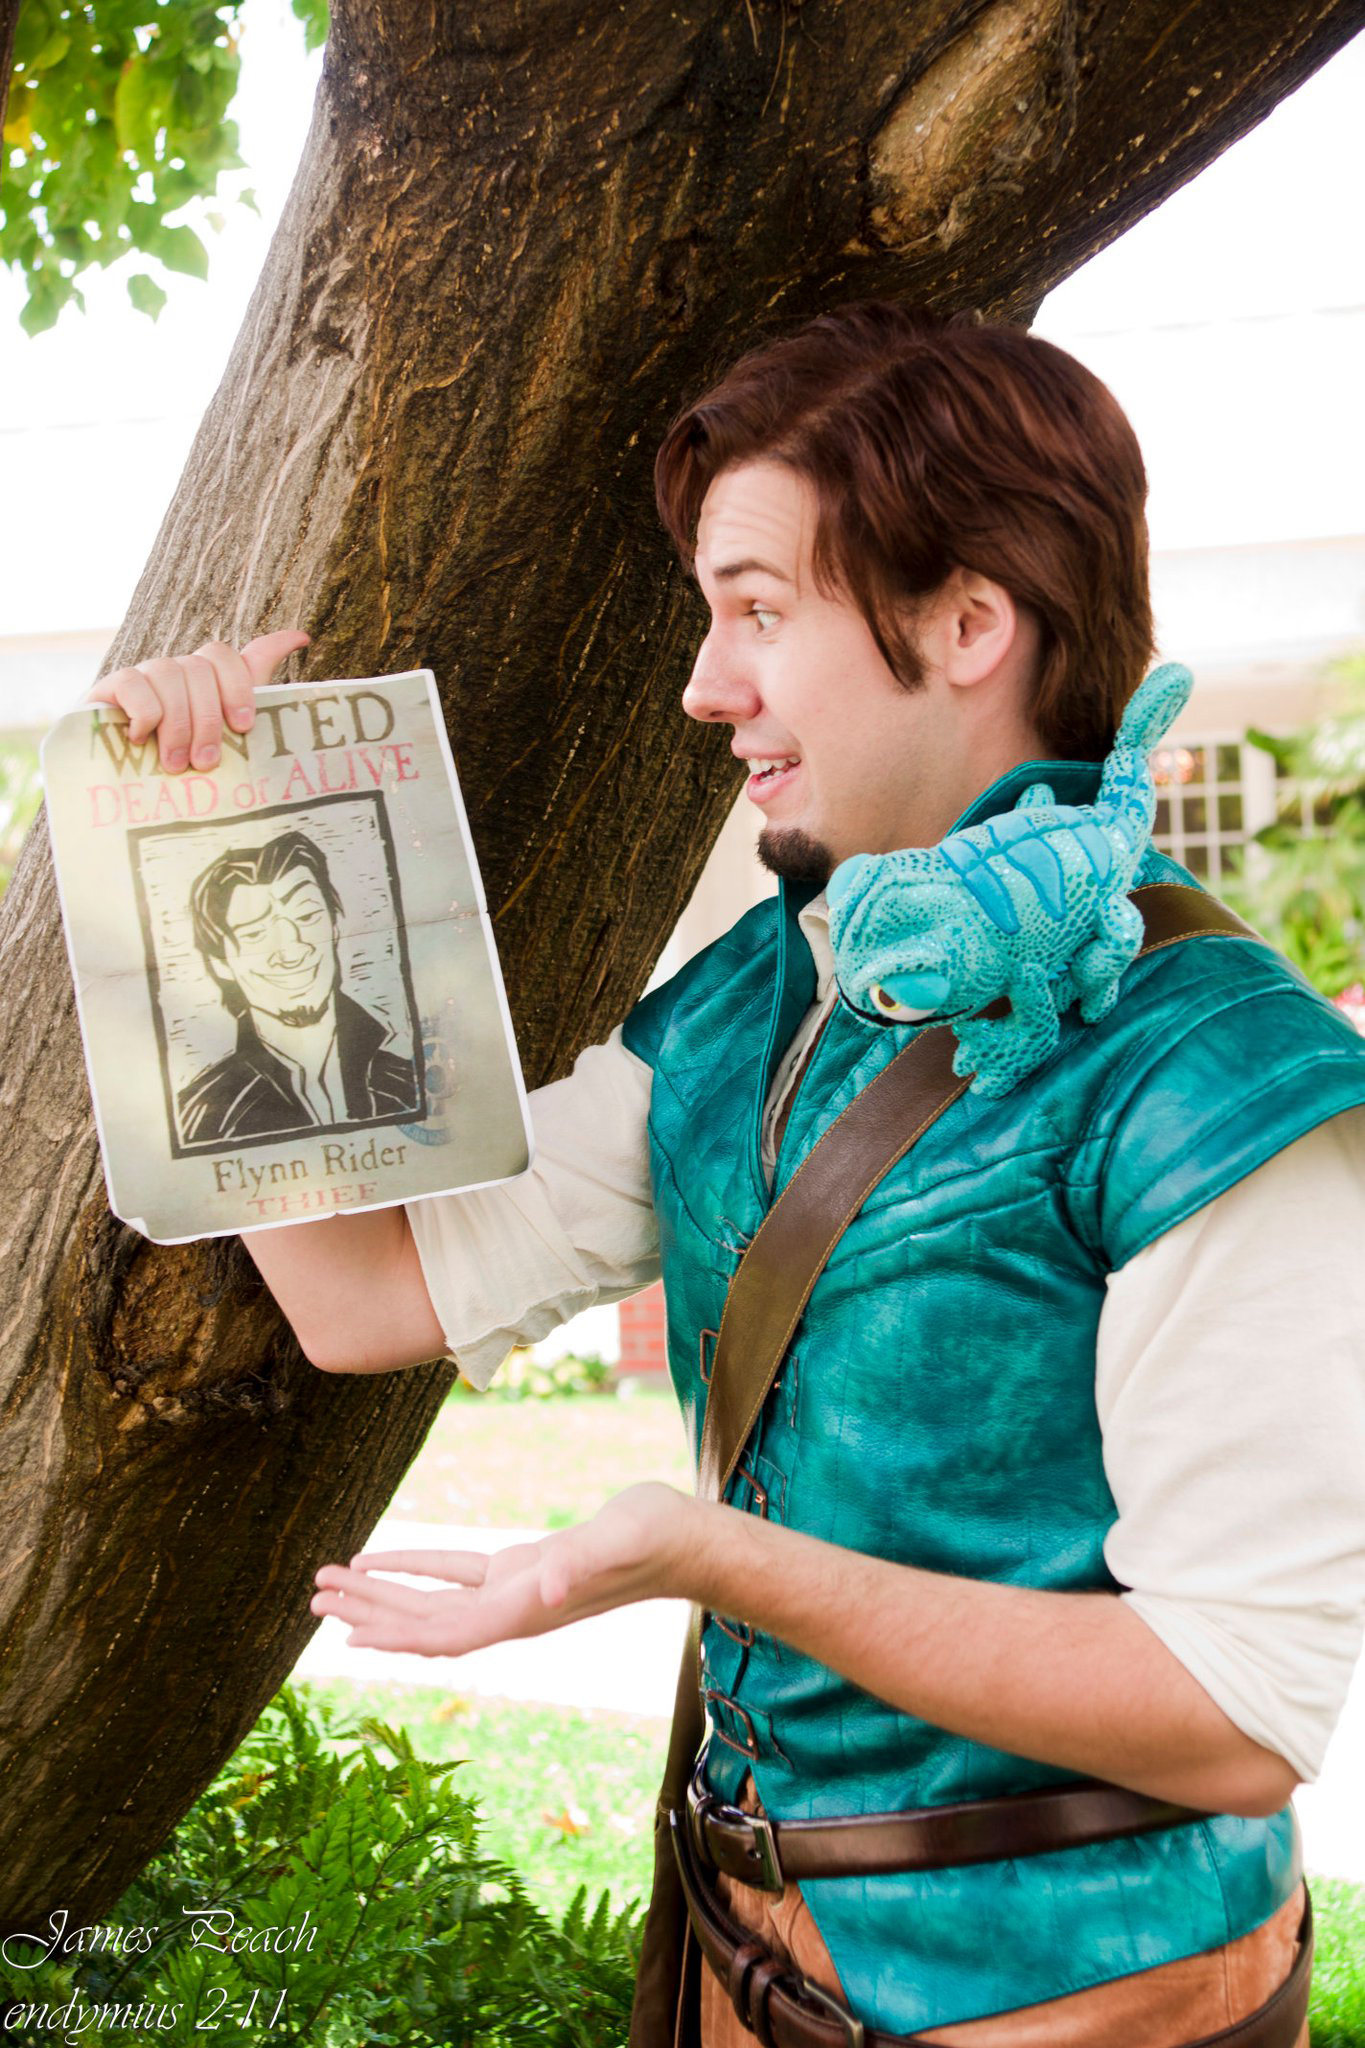 Flynn Rider Cosplay Wanted